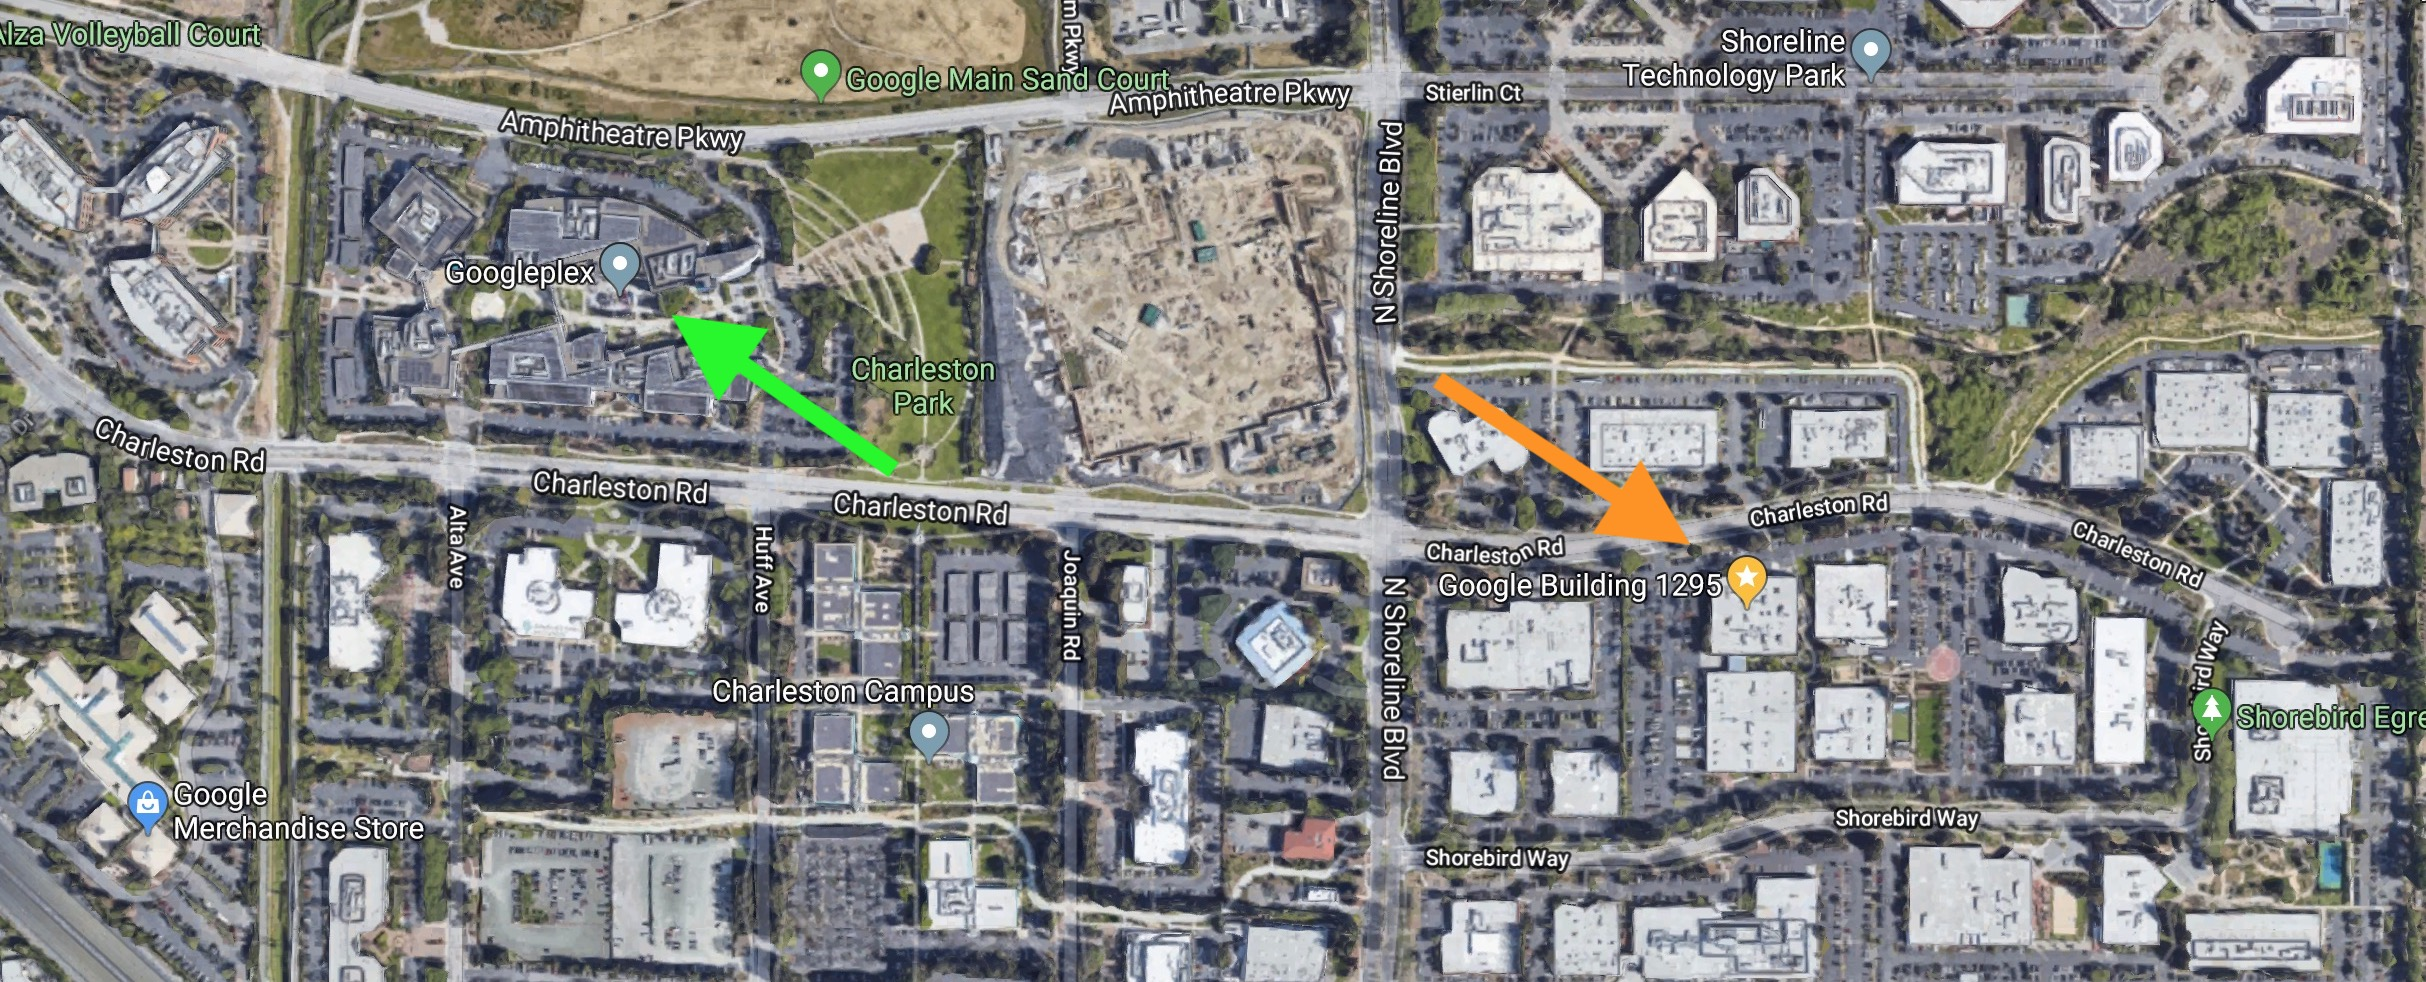 Googler at Mountain View campus diagnosed with measles ... on nintendo headquarters map, microsoft corporate headquarters map, facebook headquarters map, apple headquarters map, cia headquarters map, oracle headquarters map, allstate headquarters map, symantec headquarters map, qualcomm headquarters map, groupon headquarters map, nasa headquarters map, sony headquarters map, walmart headquarters map, google earth florida usa, nike headquarters map, google corporate office, 3m headquarters map, dell headquarters map, epic headquarters map,